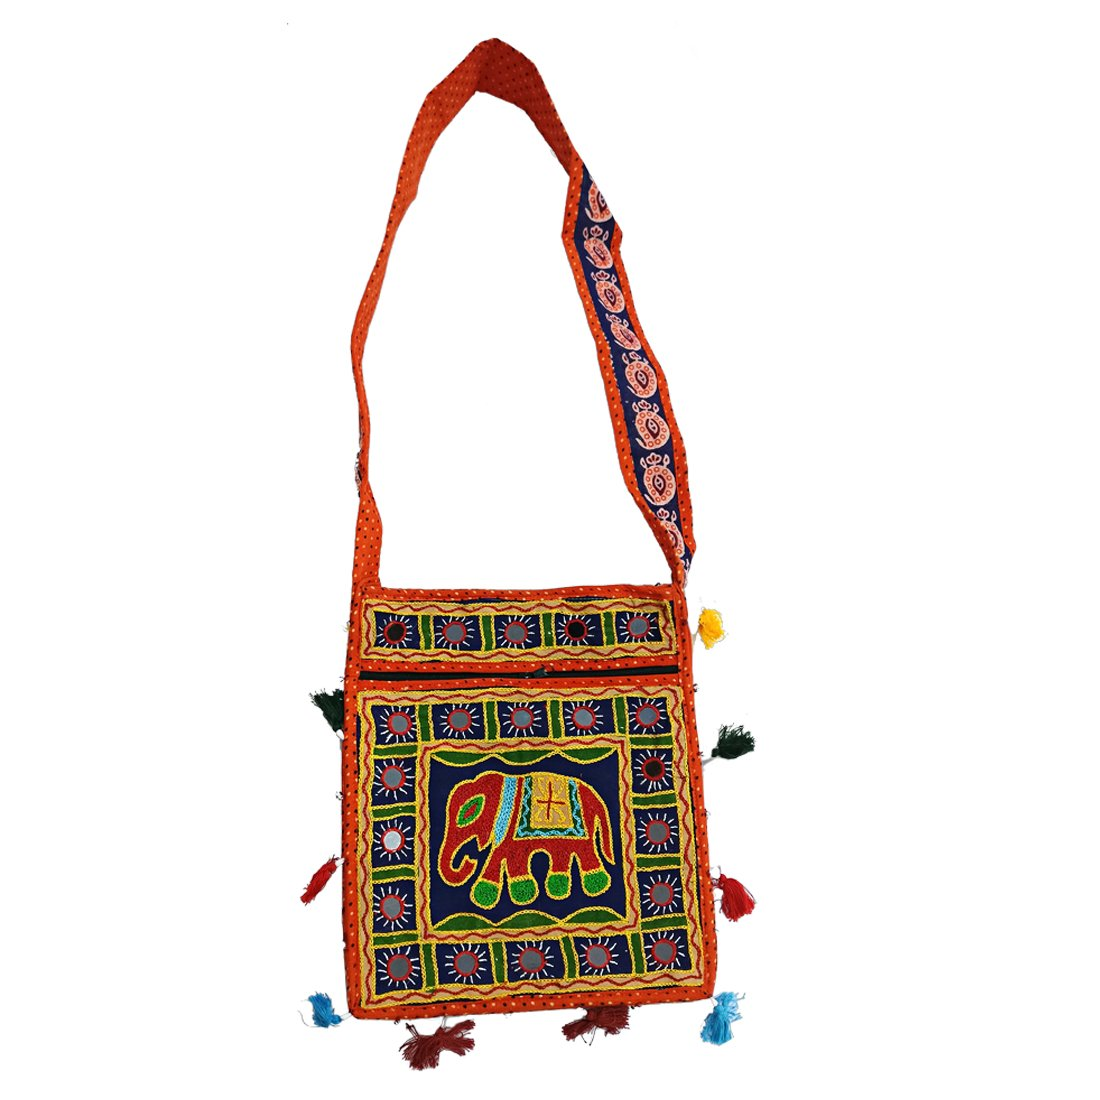 Ratnatraya Ethnic Women's Traditional Jaipur Colorful Designer Handicrafts Hand Bags For Mother, College Girls | Gift Items for Wedding, Birthday